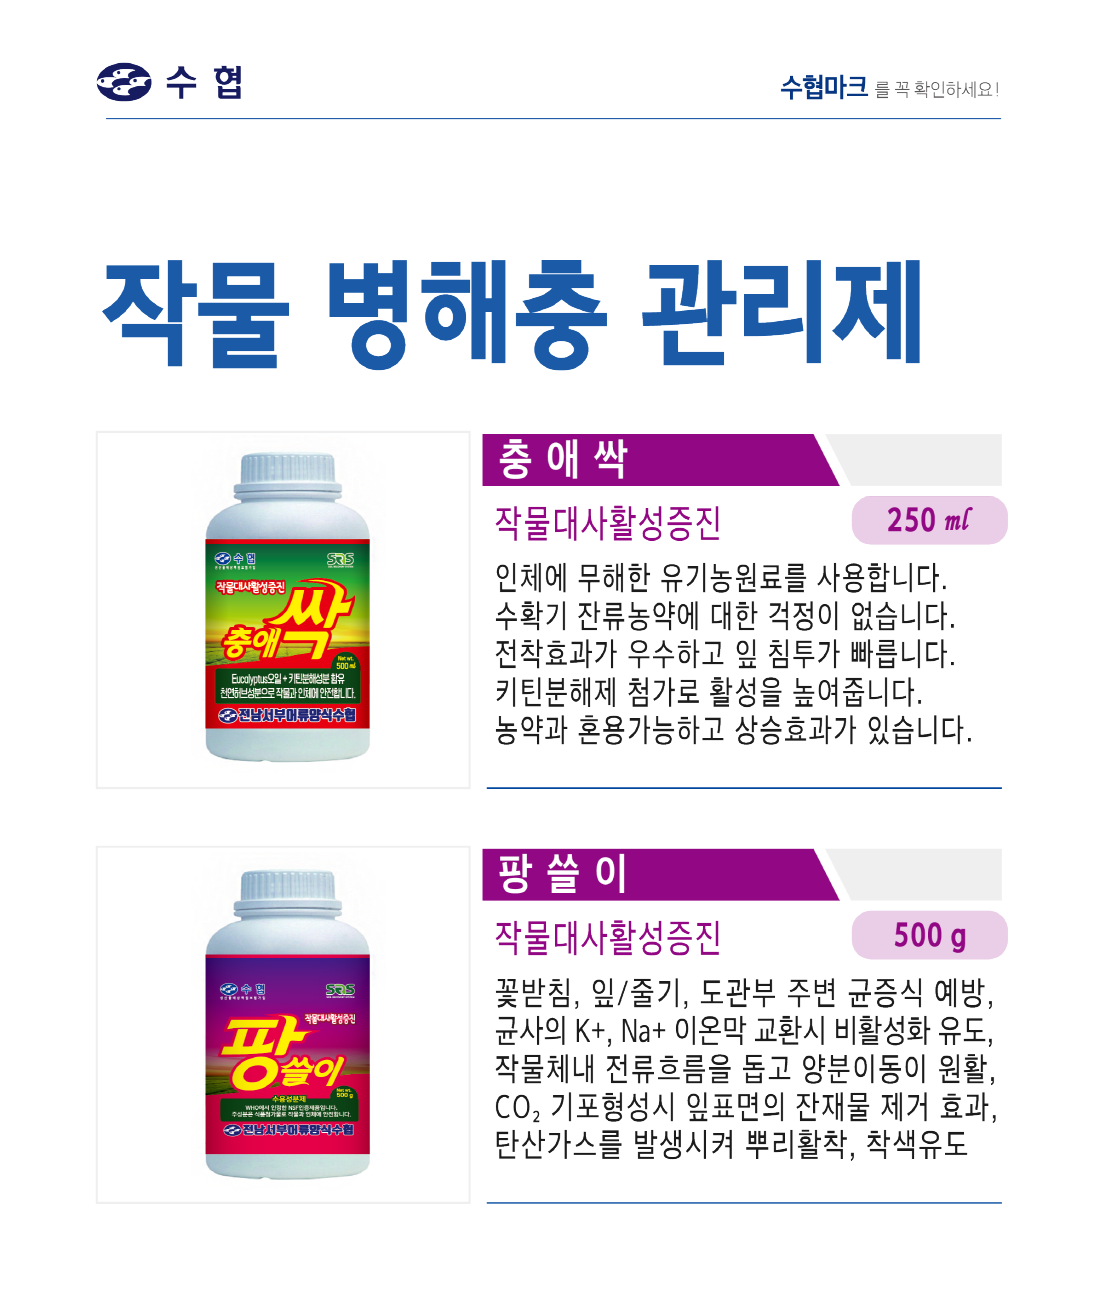 http://suhyup2019.handpr.kr/bs/se2/imgup/1589964526det2_s.png